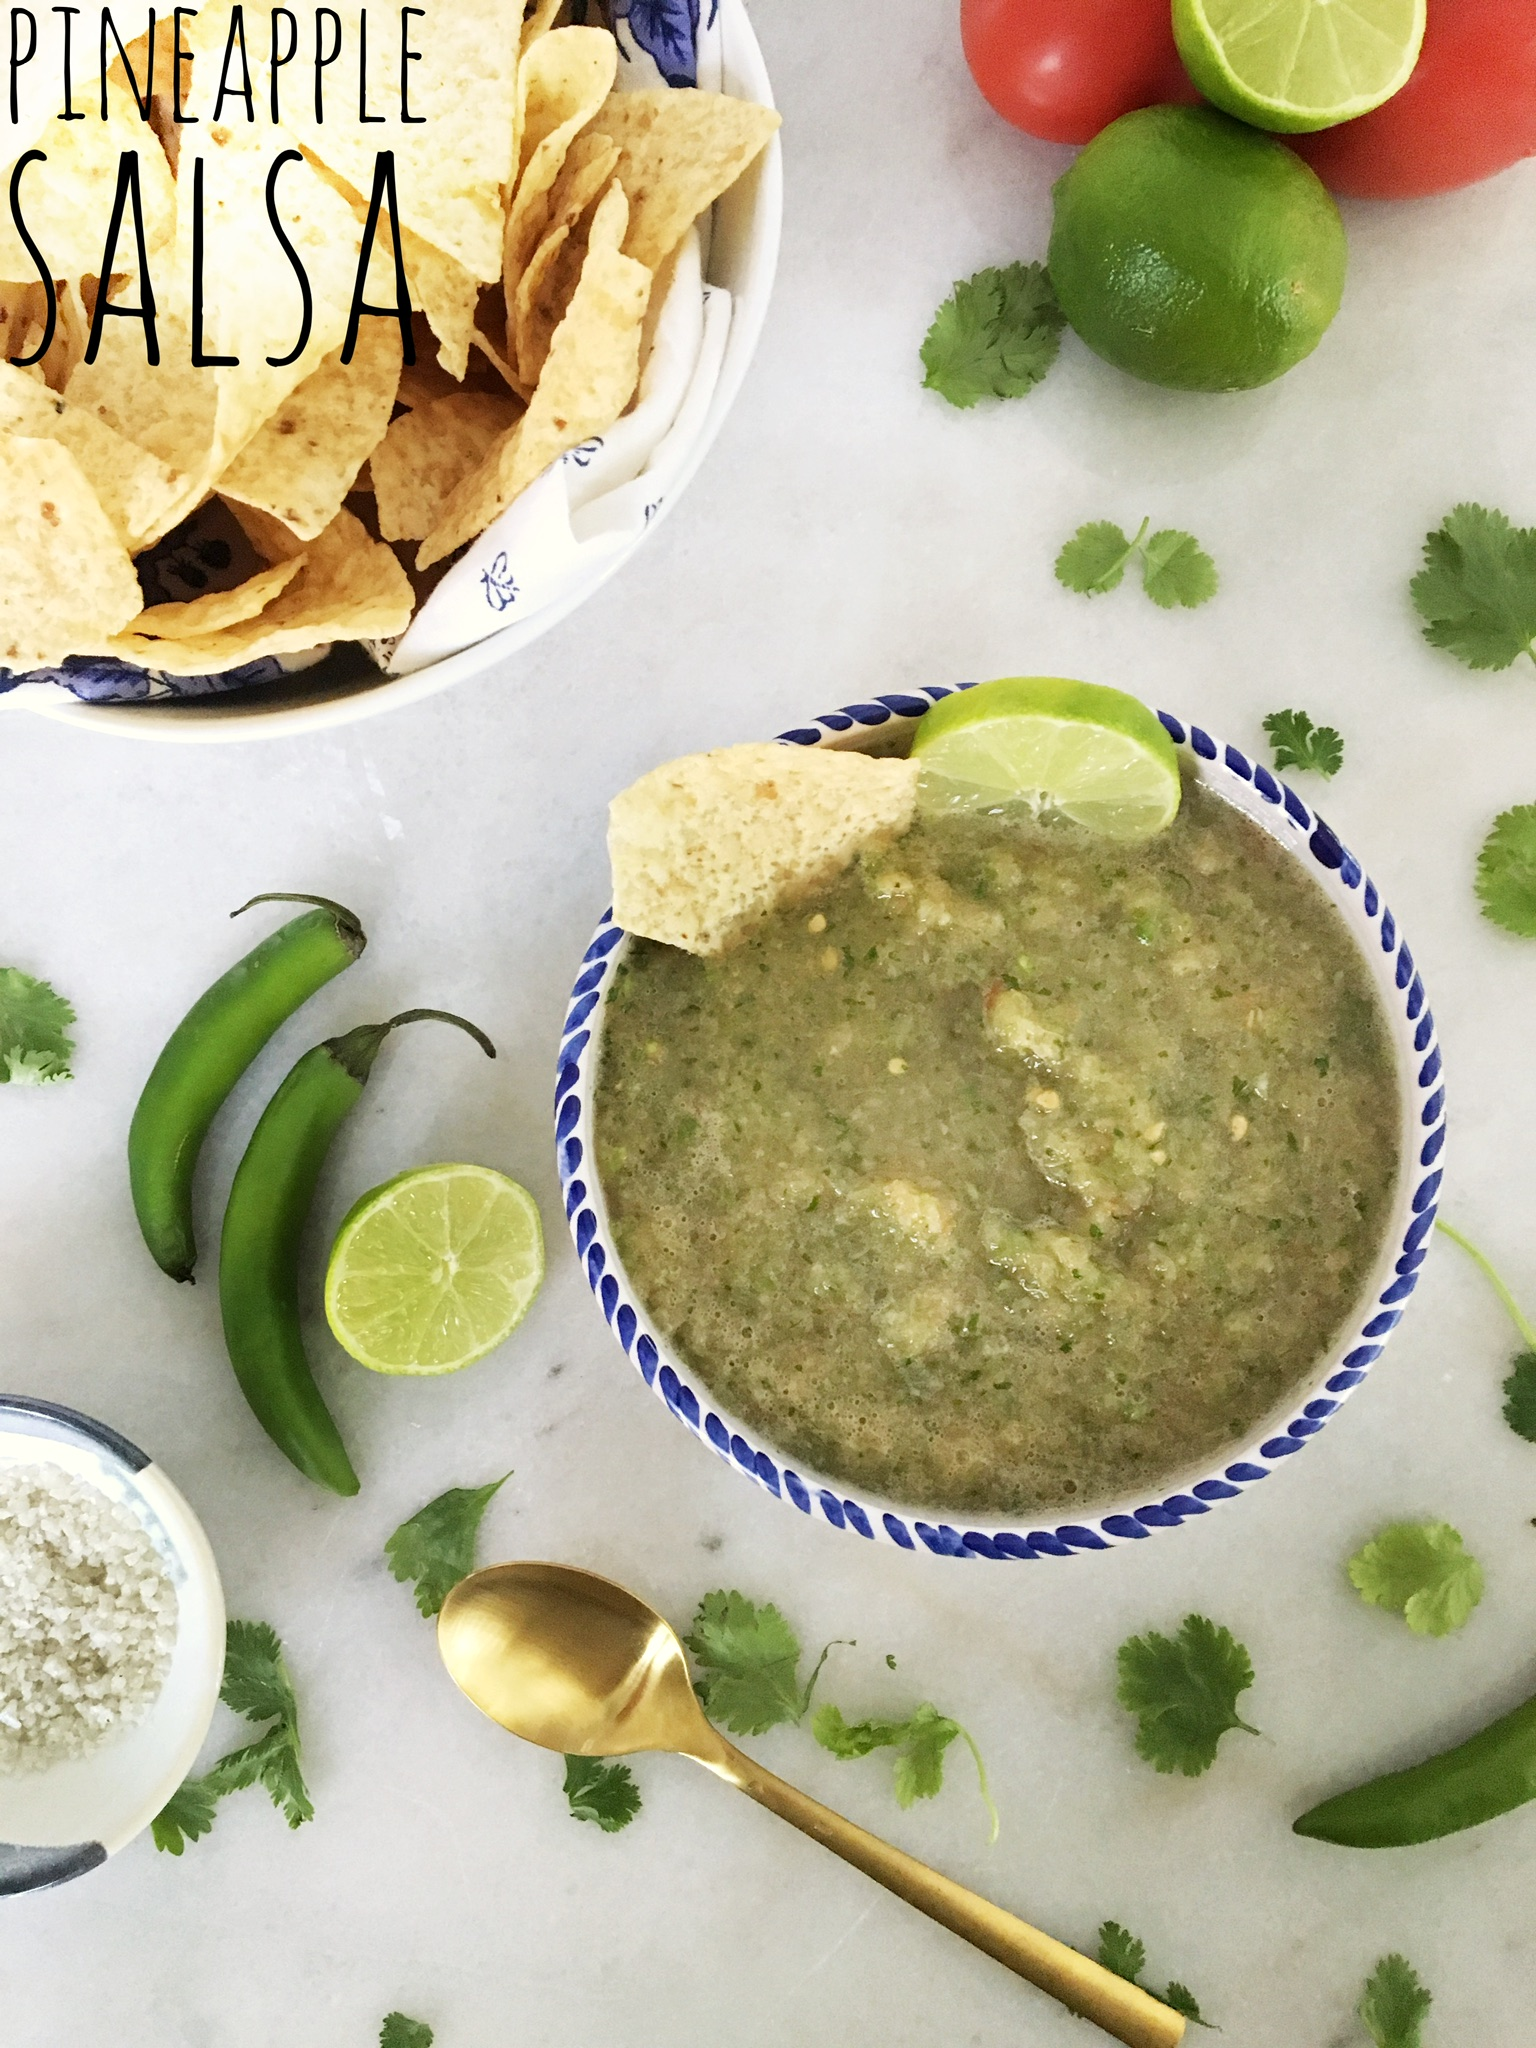 green salsa with pineapple, chilies, onion and lime juice in a Mexican bowl with tortilla chips